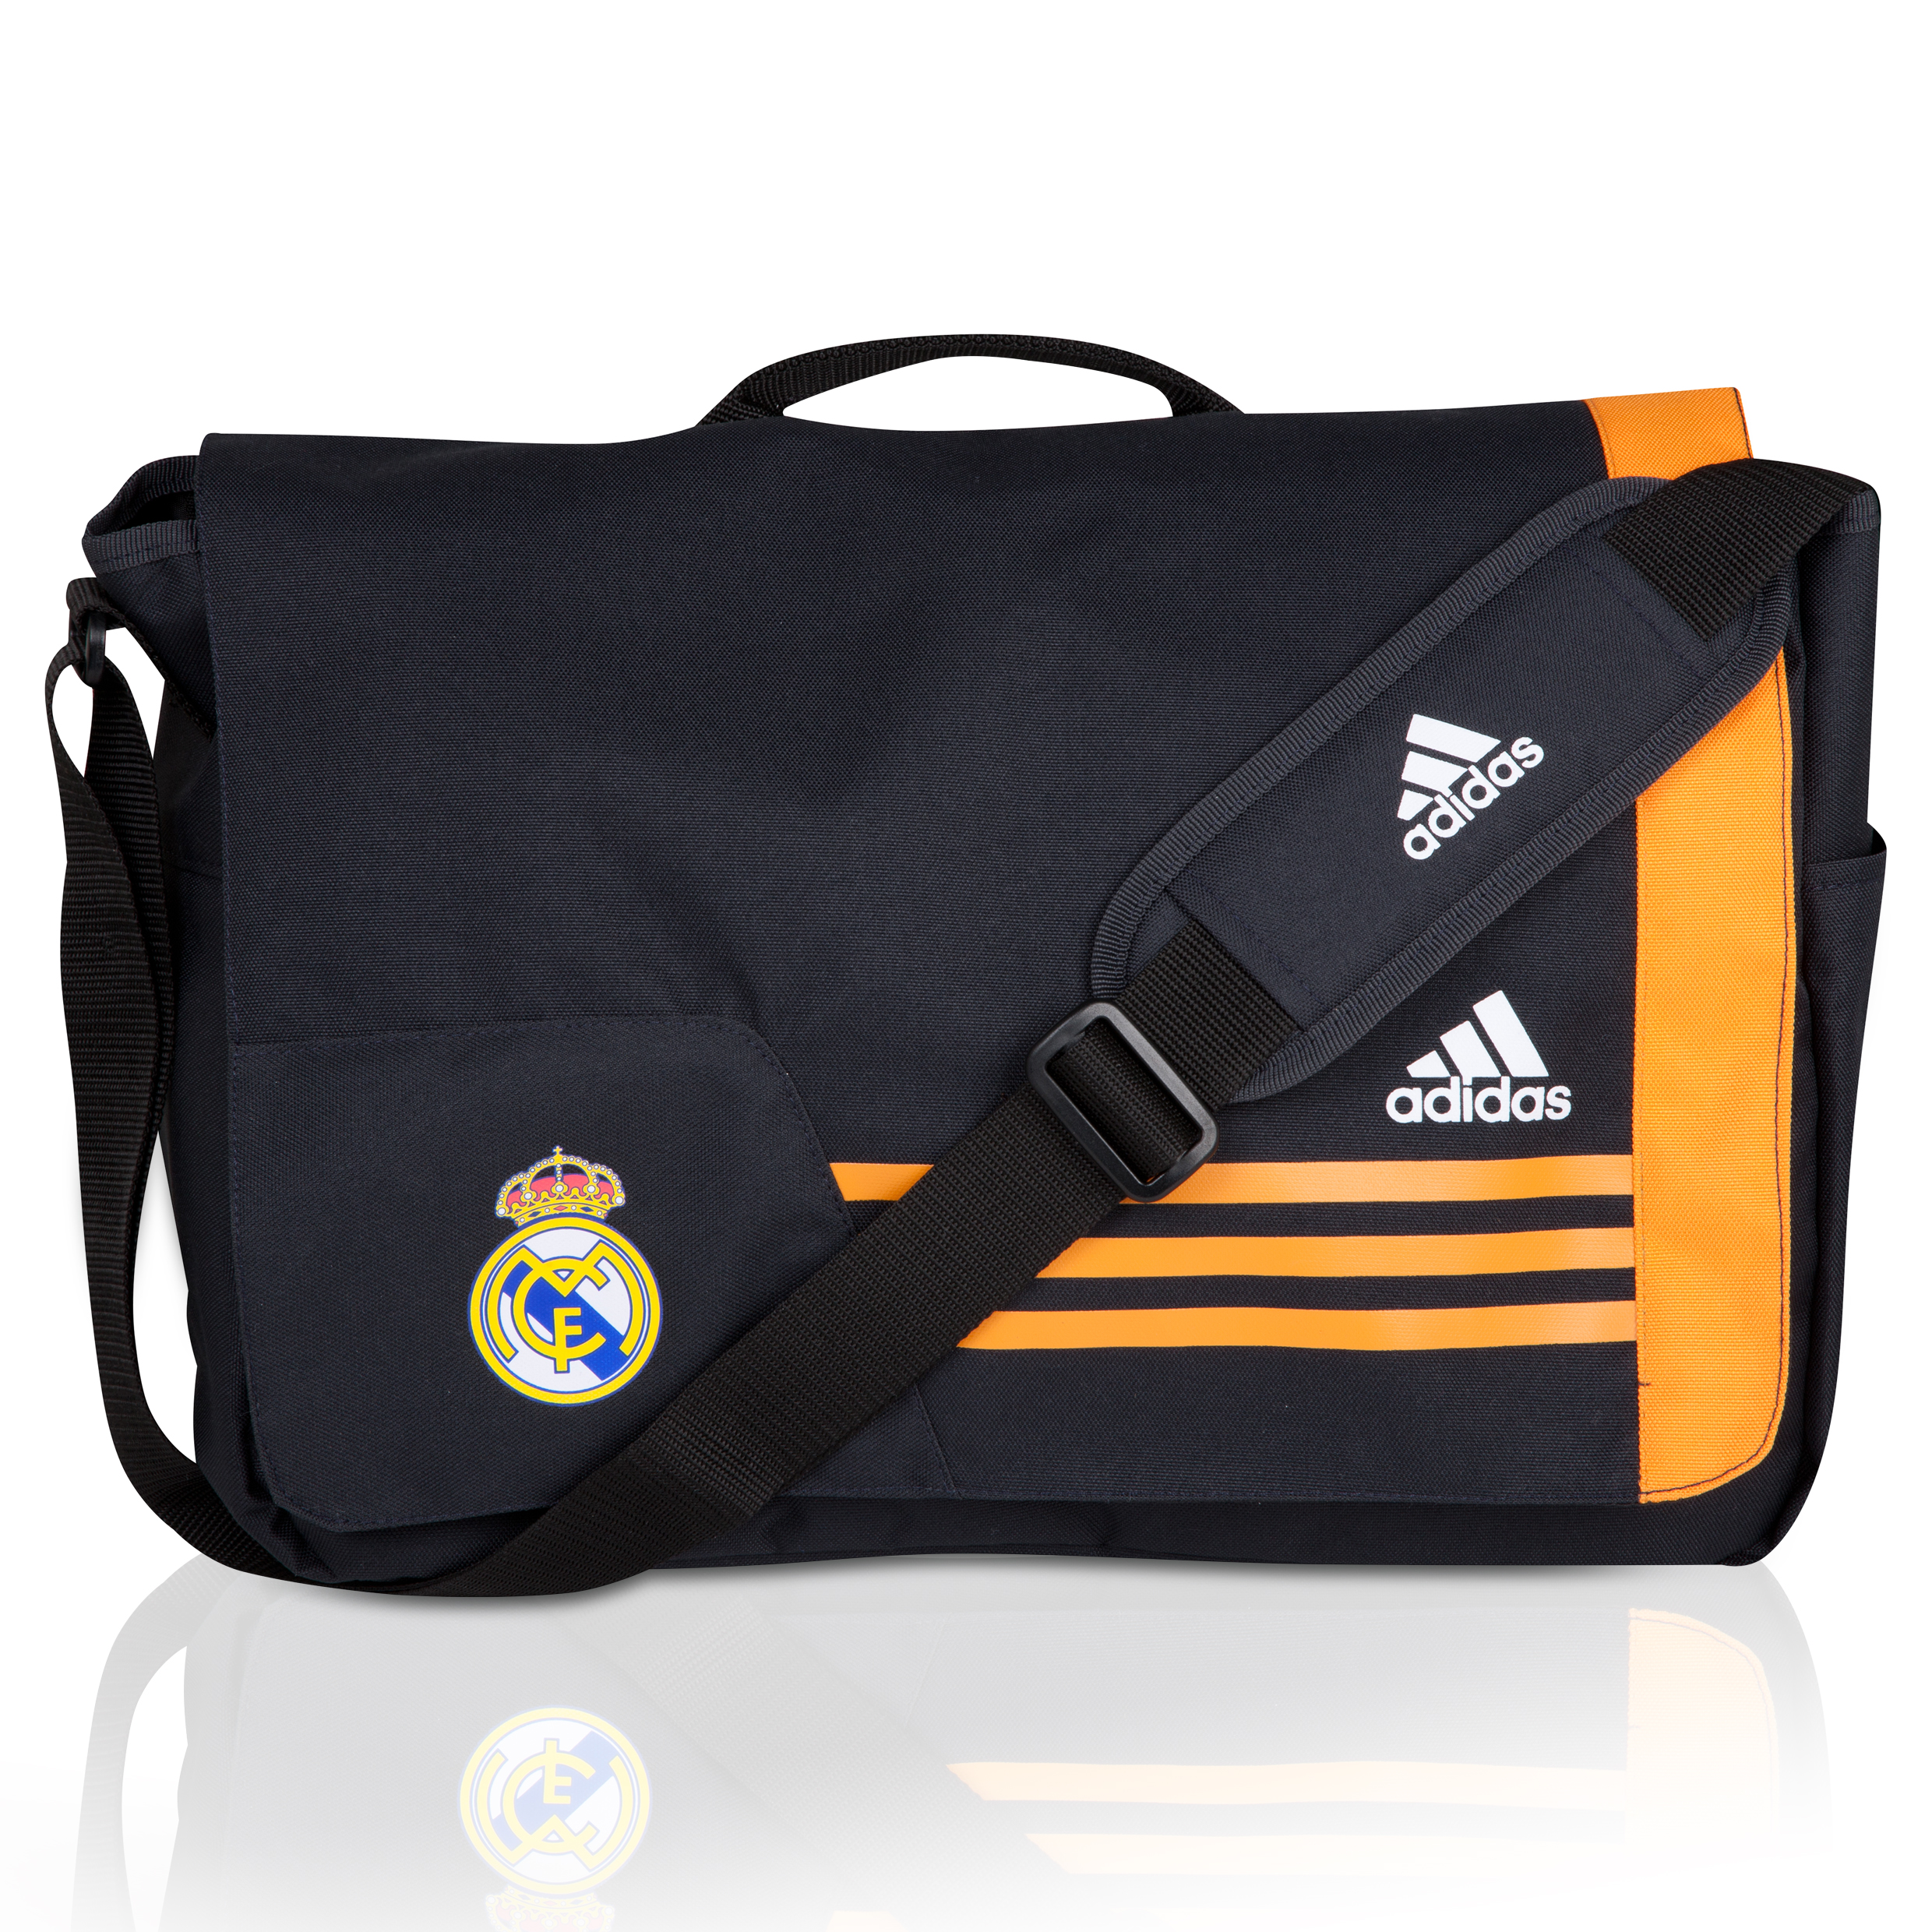 Real Madrid Messenger Bag Black